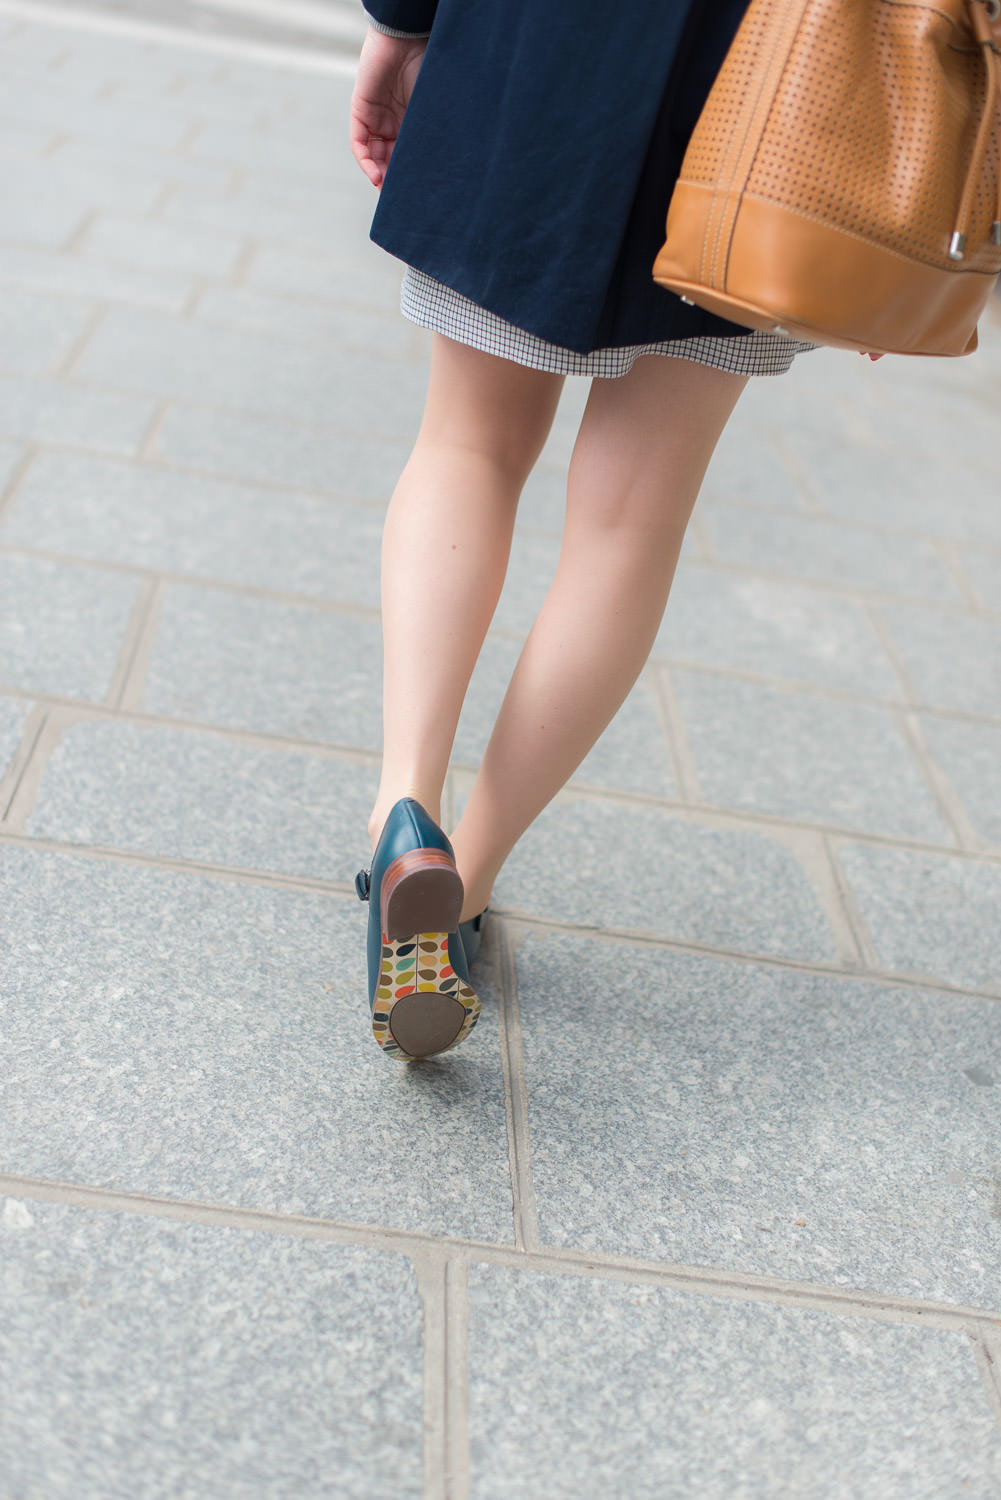 Blog-mode-Mode-And-The-City-looks-collaboration-clarks-orla-kiely (10 sur 11)